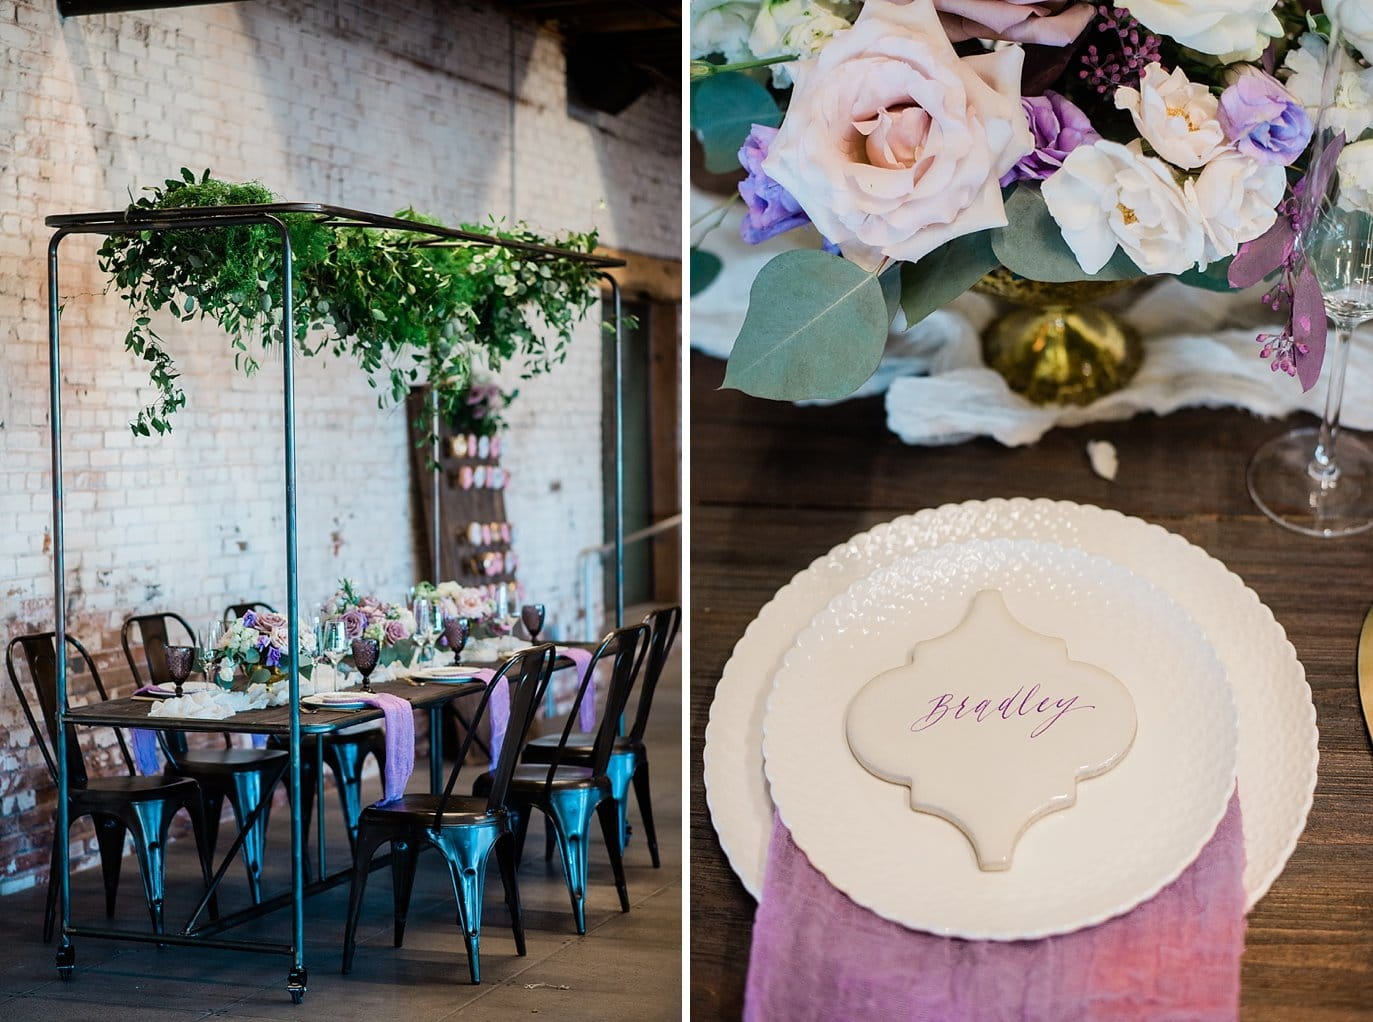 antique metal head table with hanging greenery and metal chairs at Shyft Denver wedding by Lyons wedding photographer Jennie Crate